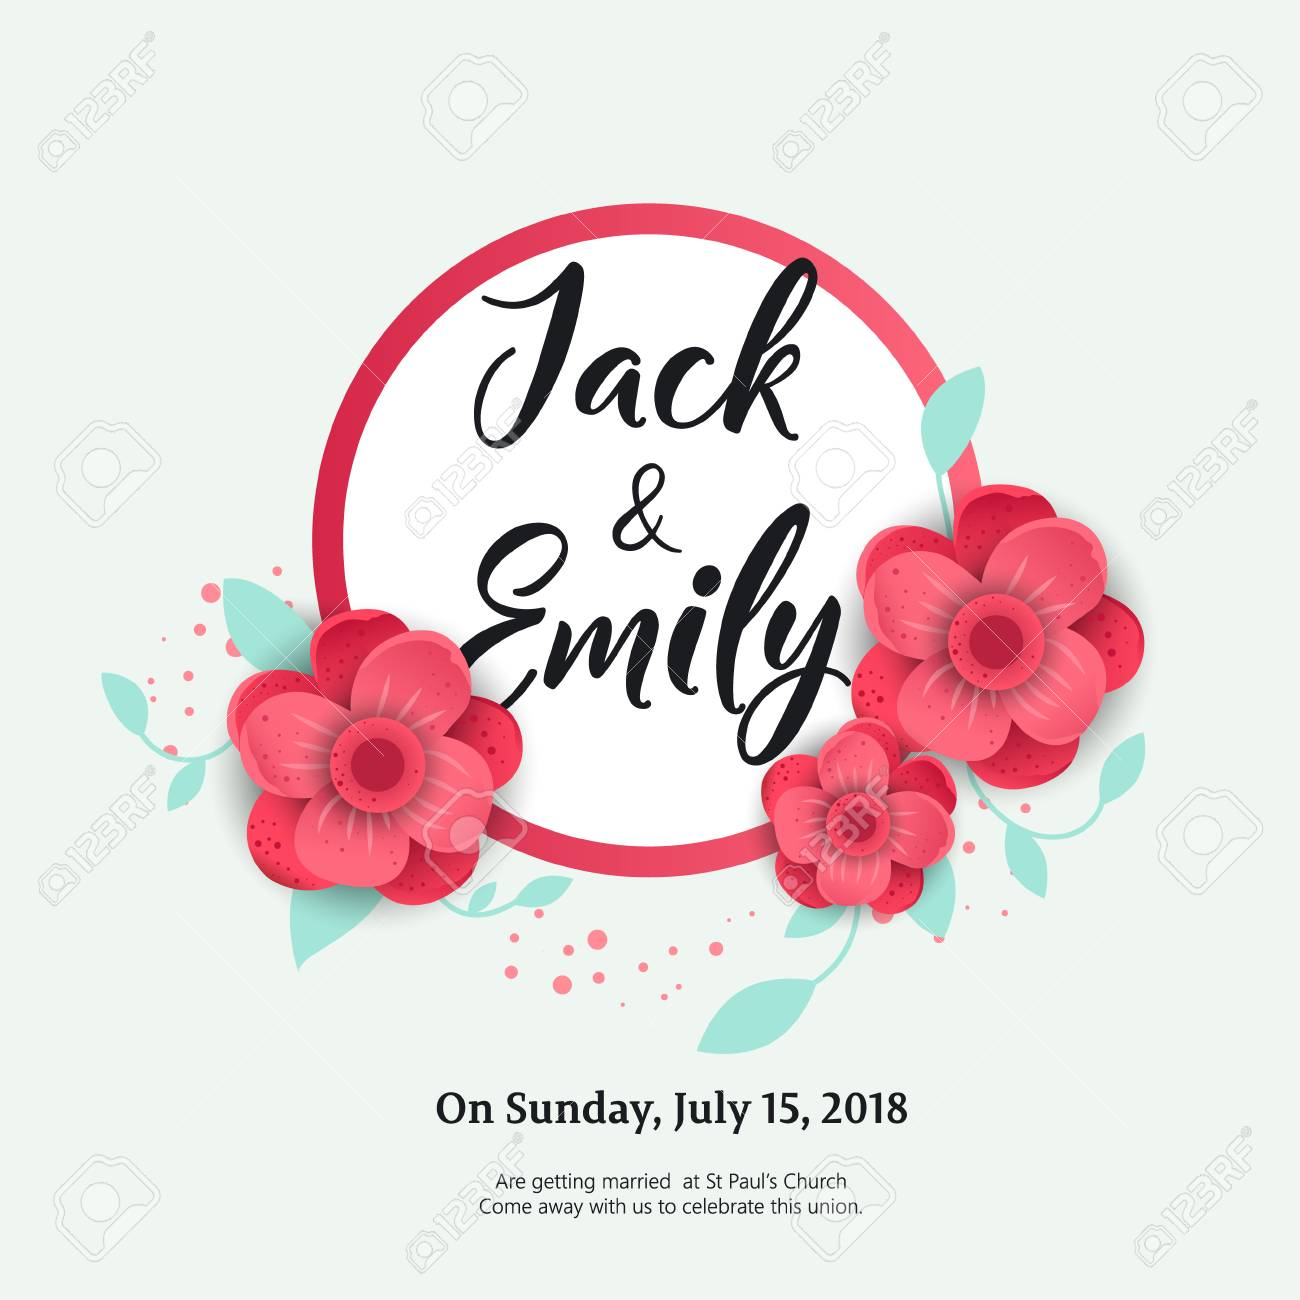 Wedding Invitation Floral Invite Card Design Wedding Invite